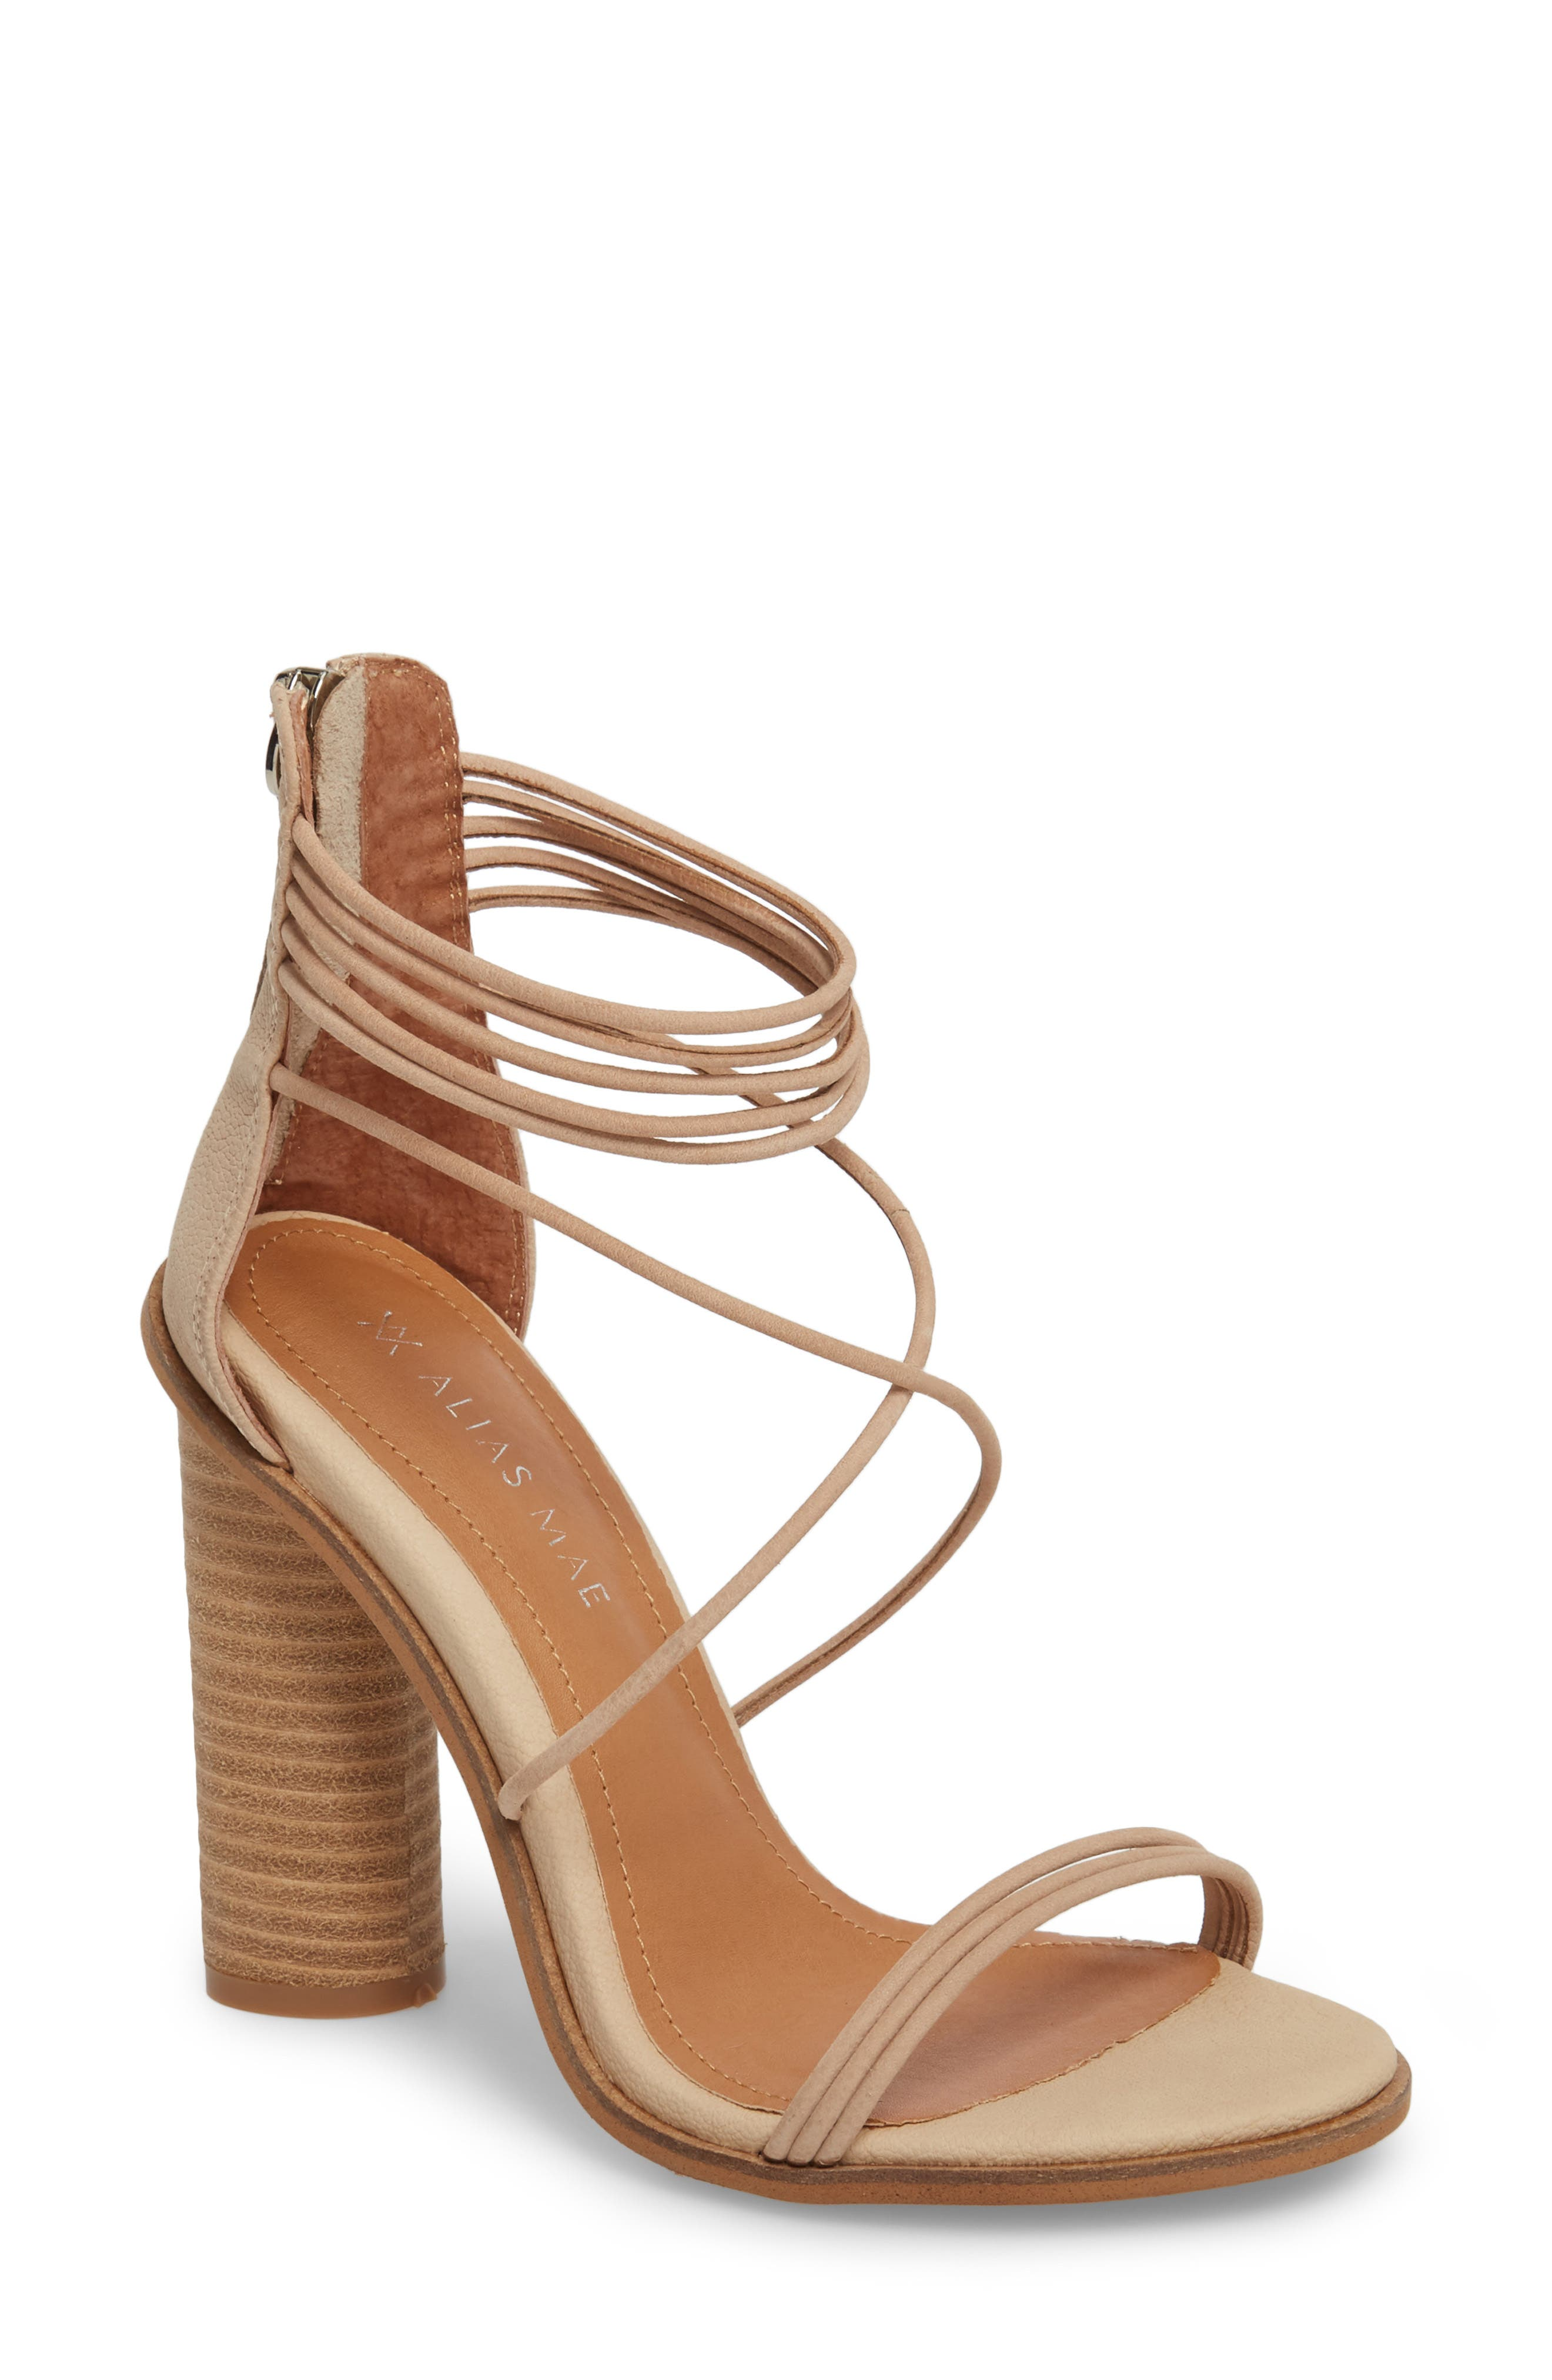 Aflux Tall Strappy Sandal,                             Main thumbnail 1, color,                             NATURAL LEATHER